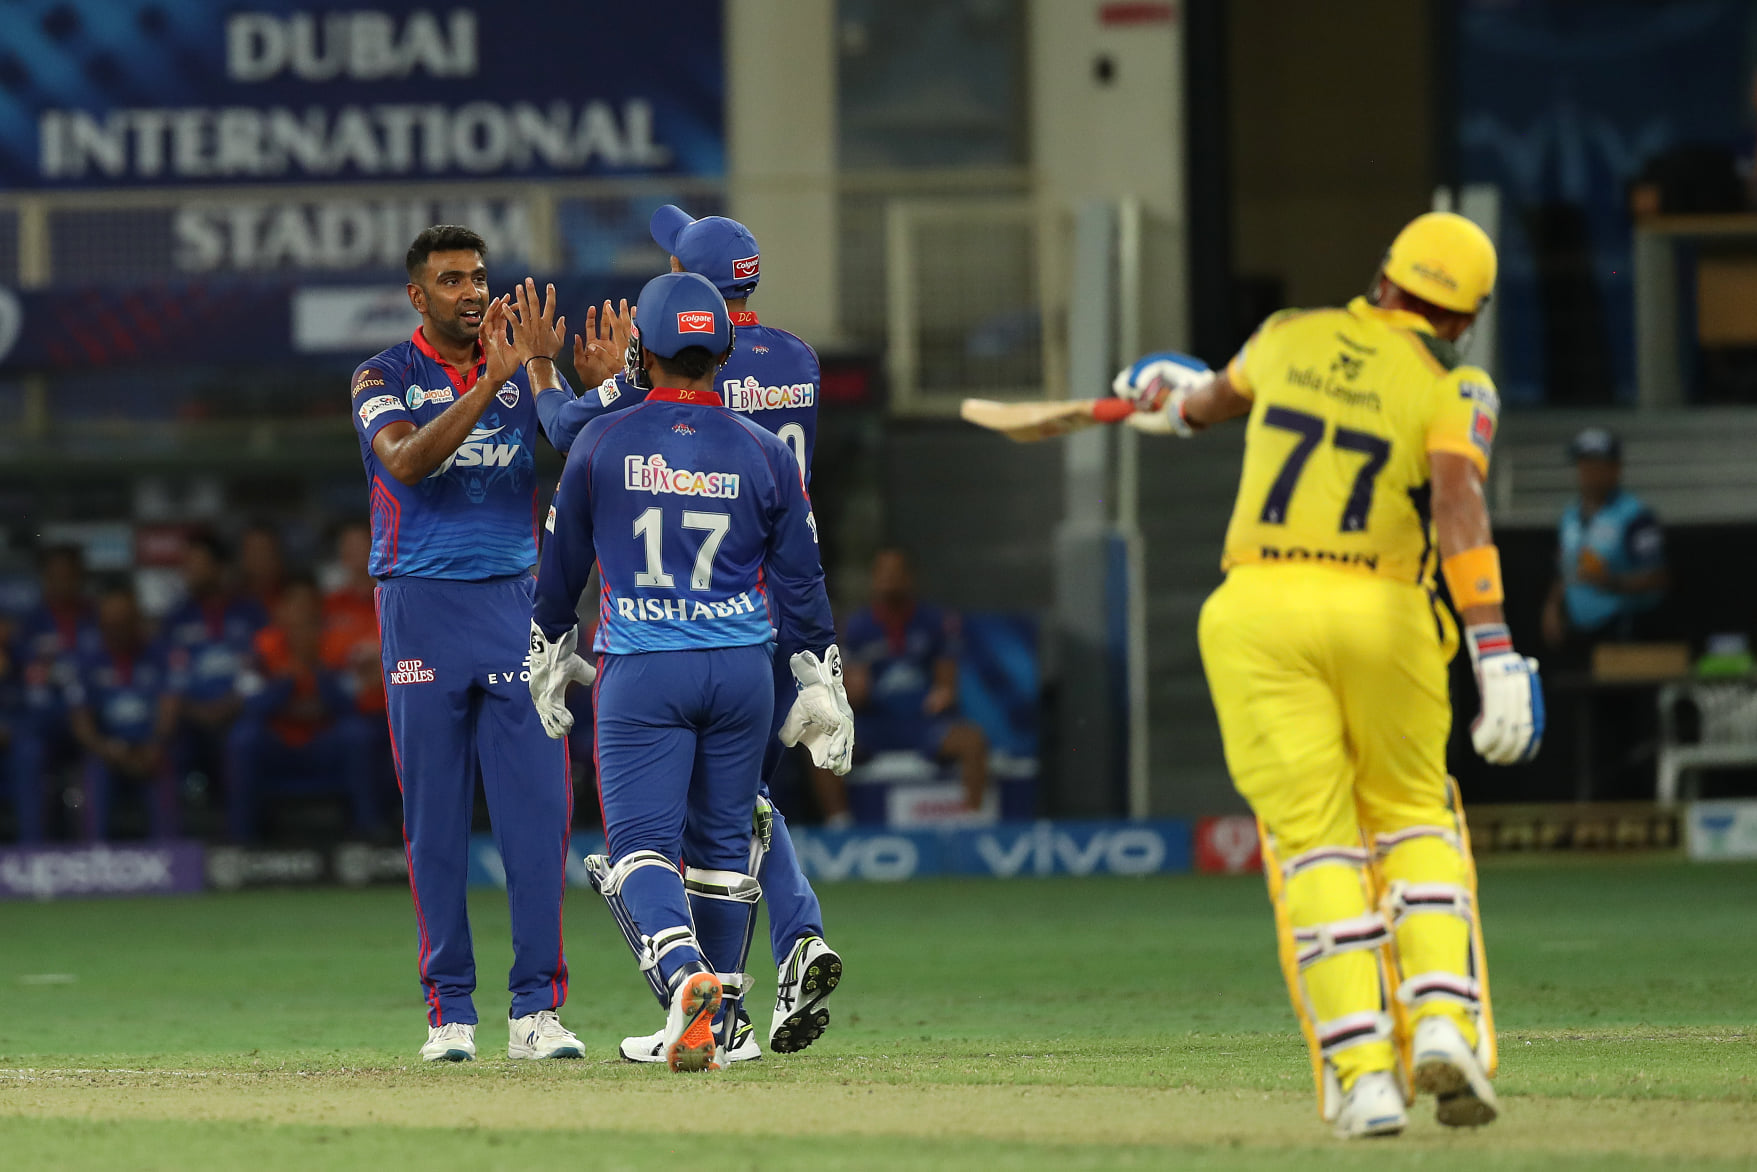 IPL: CSK suffer back to back losses, DC climb to top of table » Meroshare